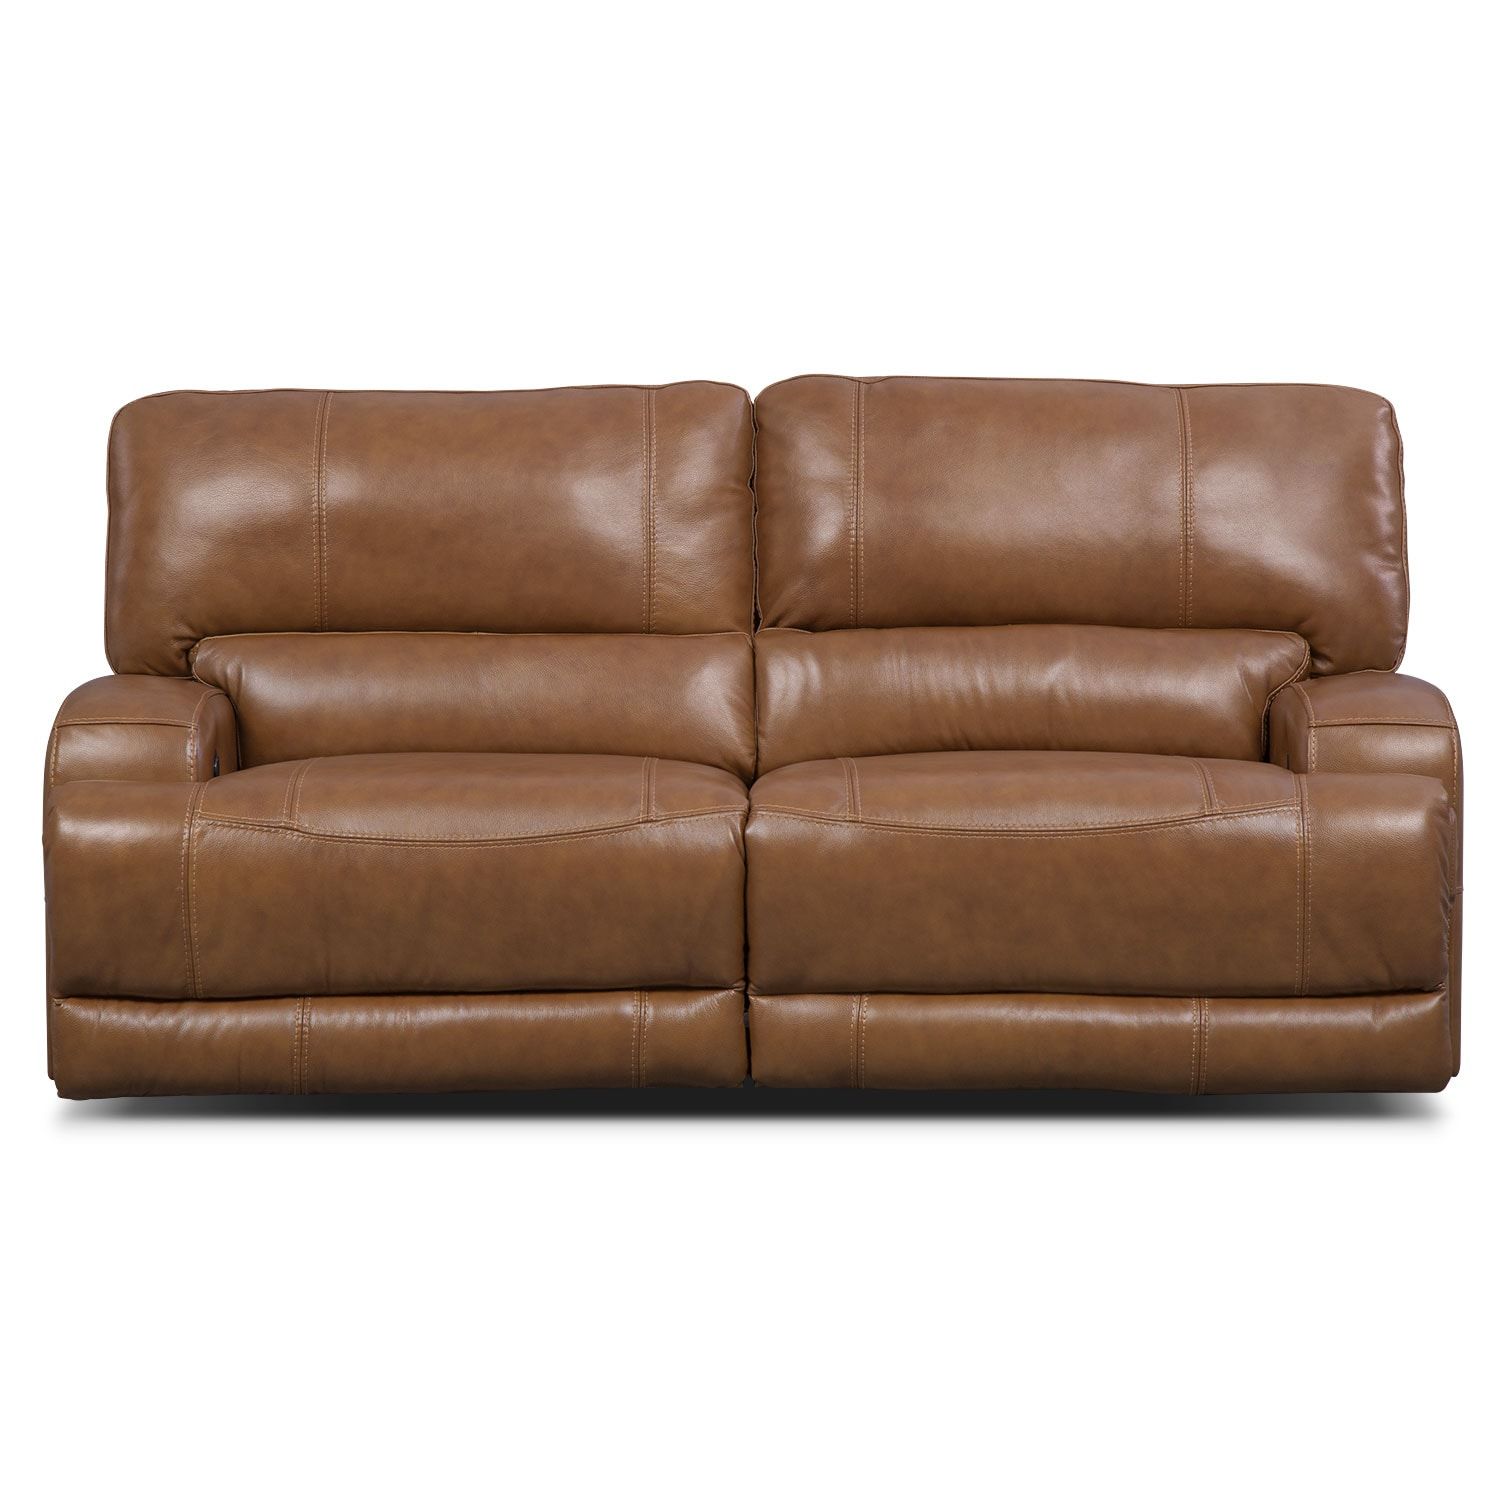 Furniture Village Sofas barton power reclining sofa - camel | value city furniture